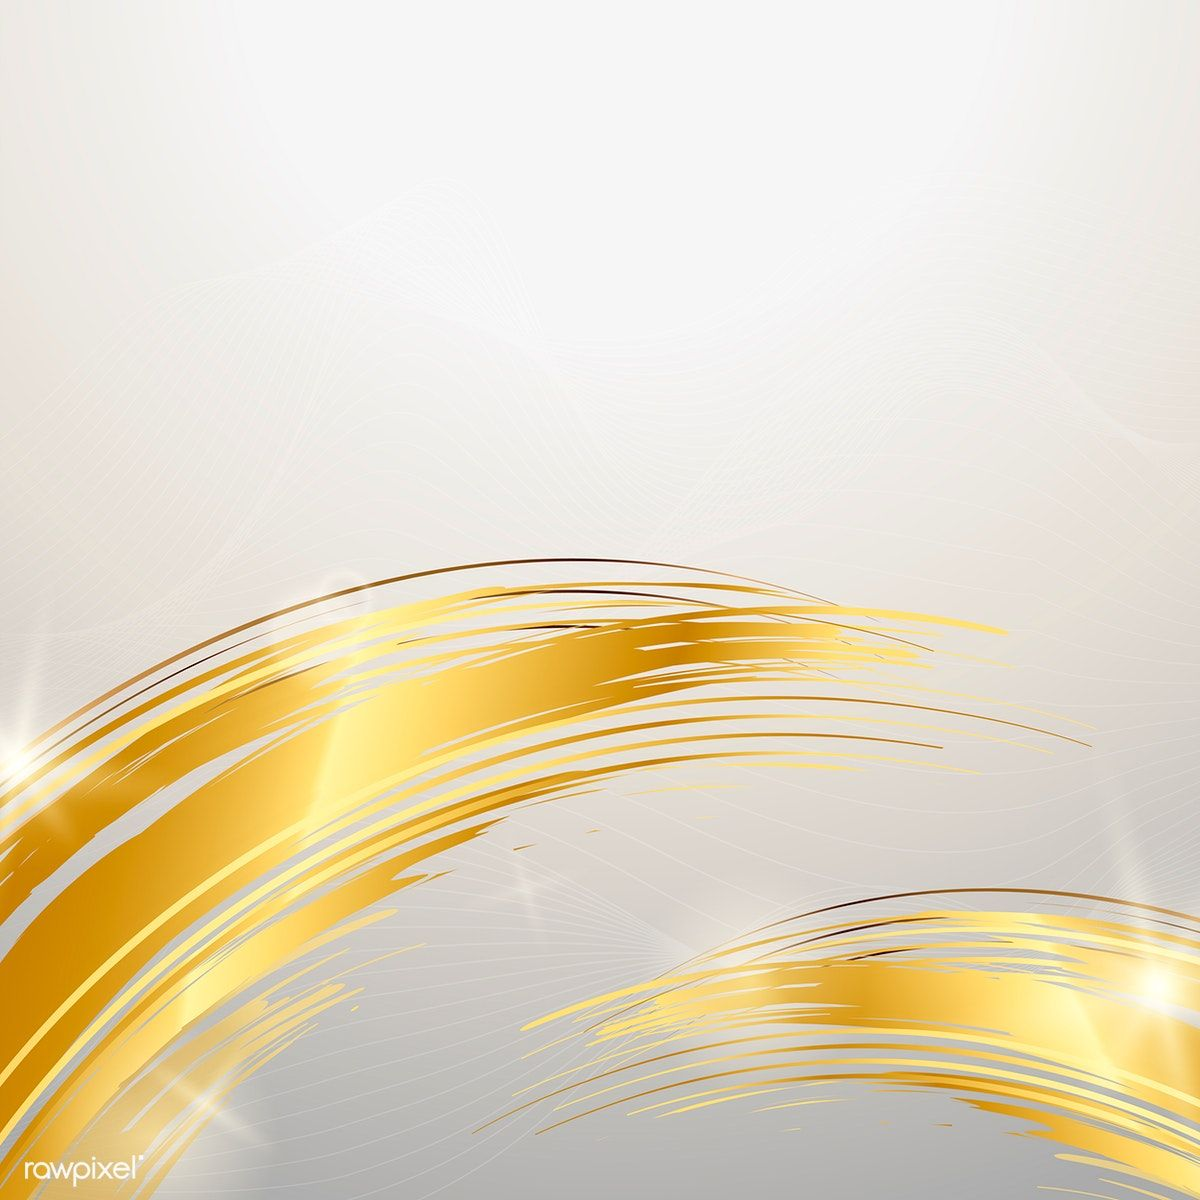 Golden Wave Abstract Background Vector Free Image By Rawpixel Com Kappy Kappy Abstract Backgrounds Vector Art Design Abstract